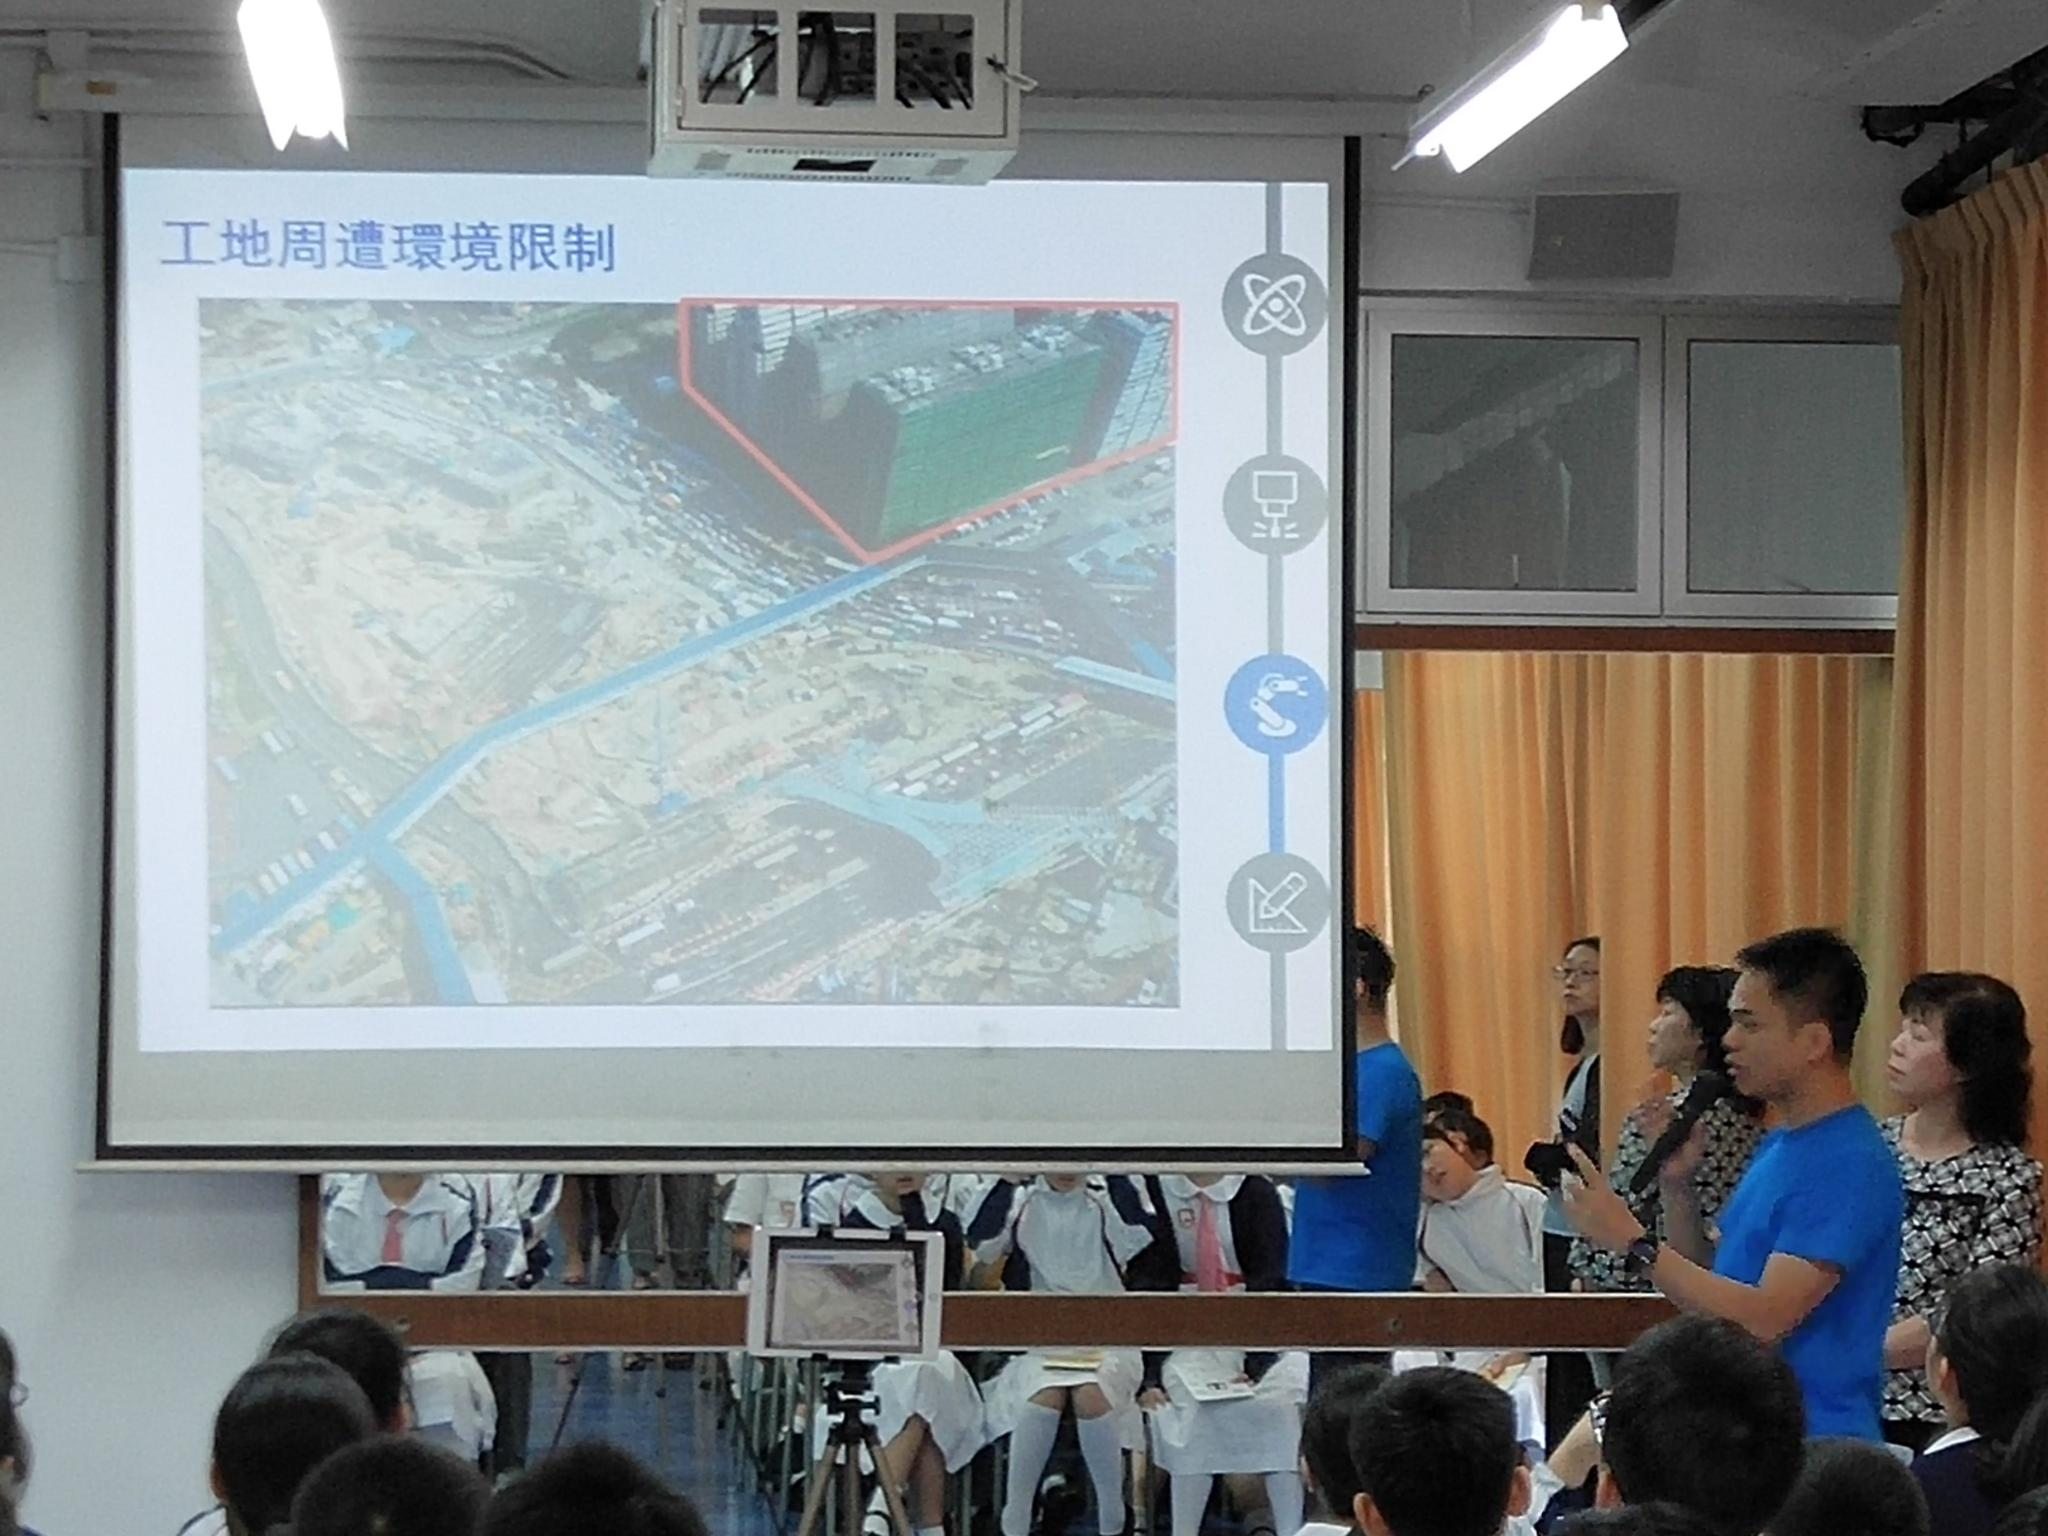 The speaker explained how to consider and tackle the environment contraints in the construction of MTR stations.